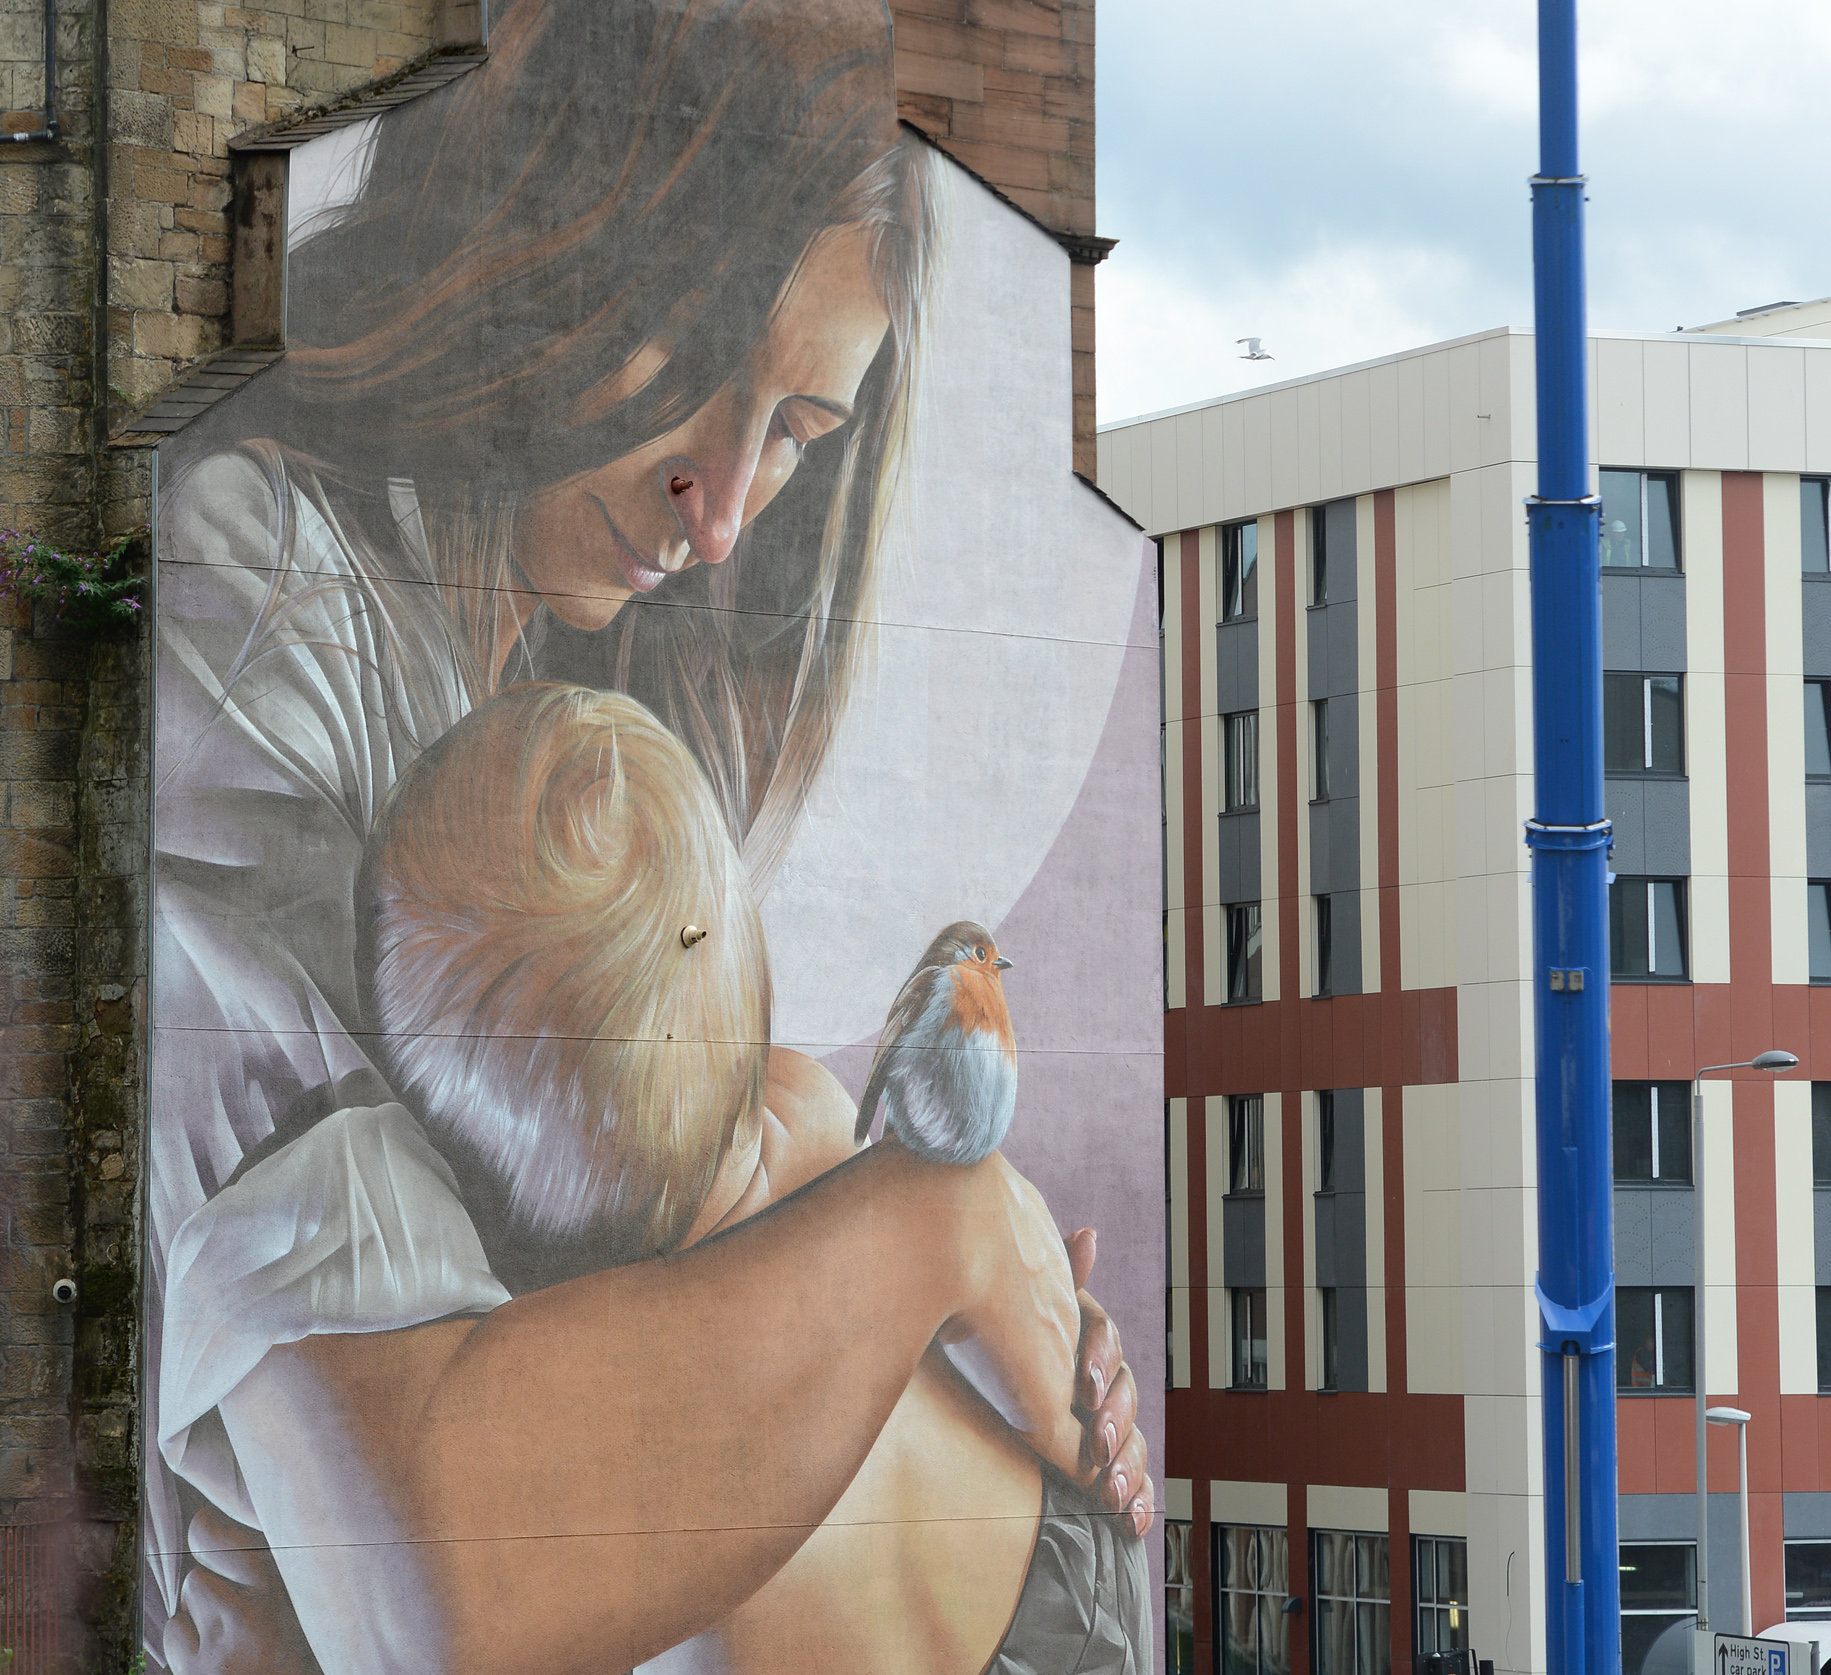 Smug's mural of Thaney and her son Mungo, at the corner of Glasgow's High Street, conveys a message about finding refuge in the city